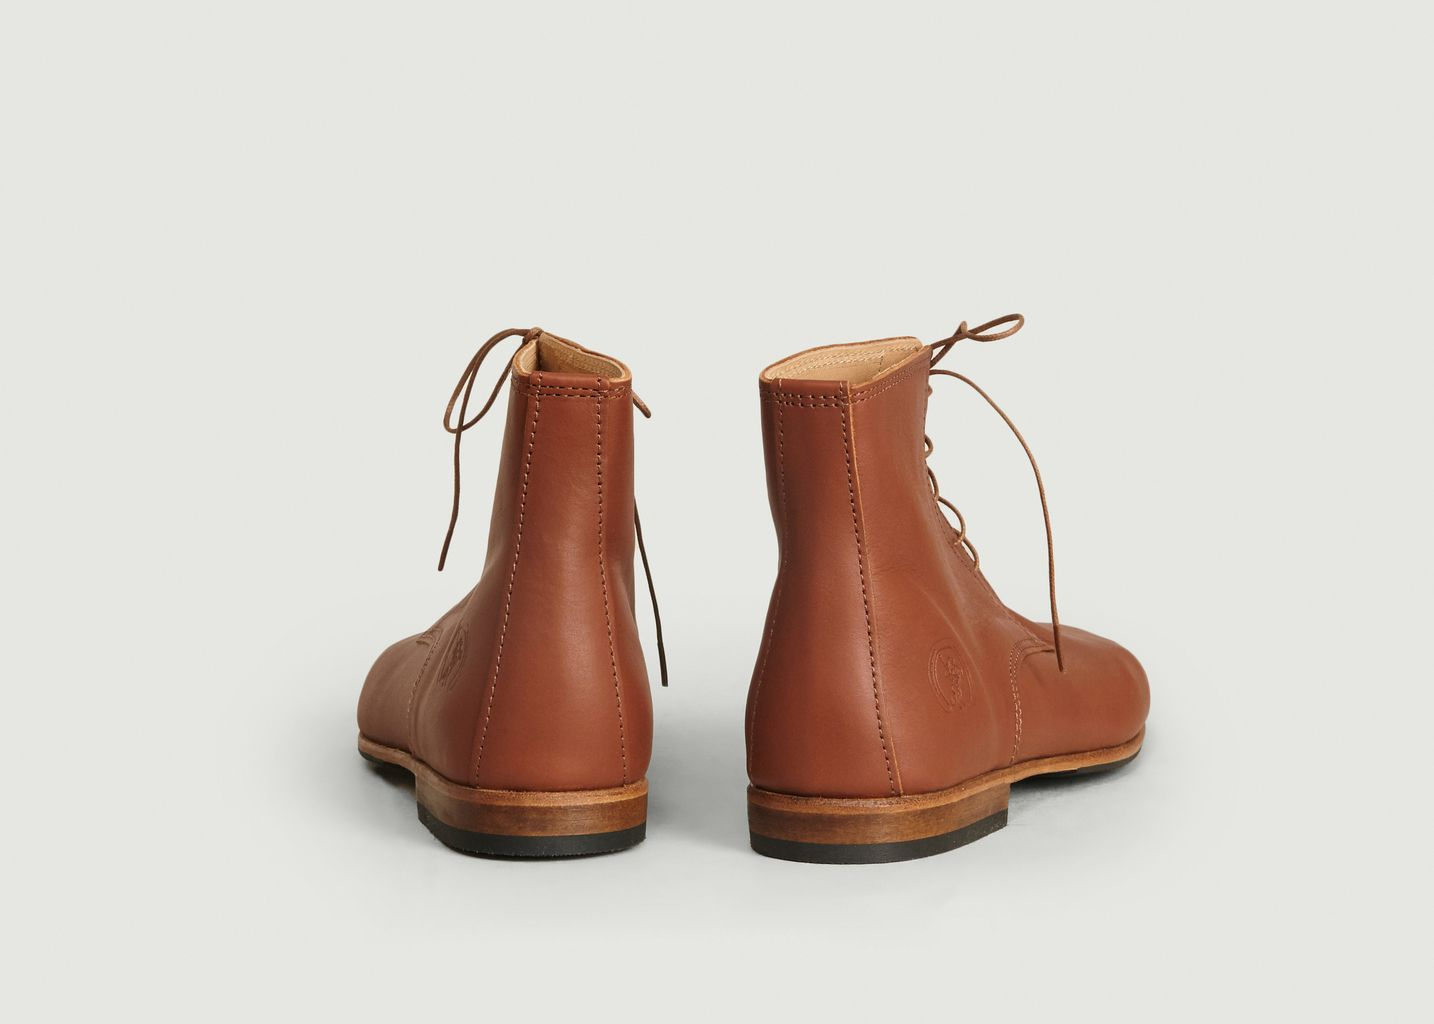 Bottines Albert en cuir de veau - La Botte Gardiane